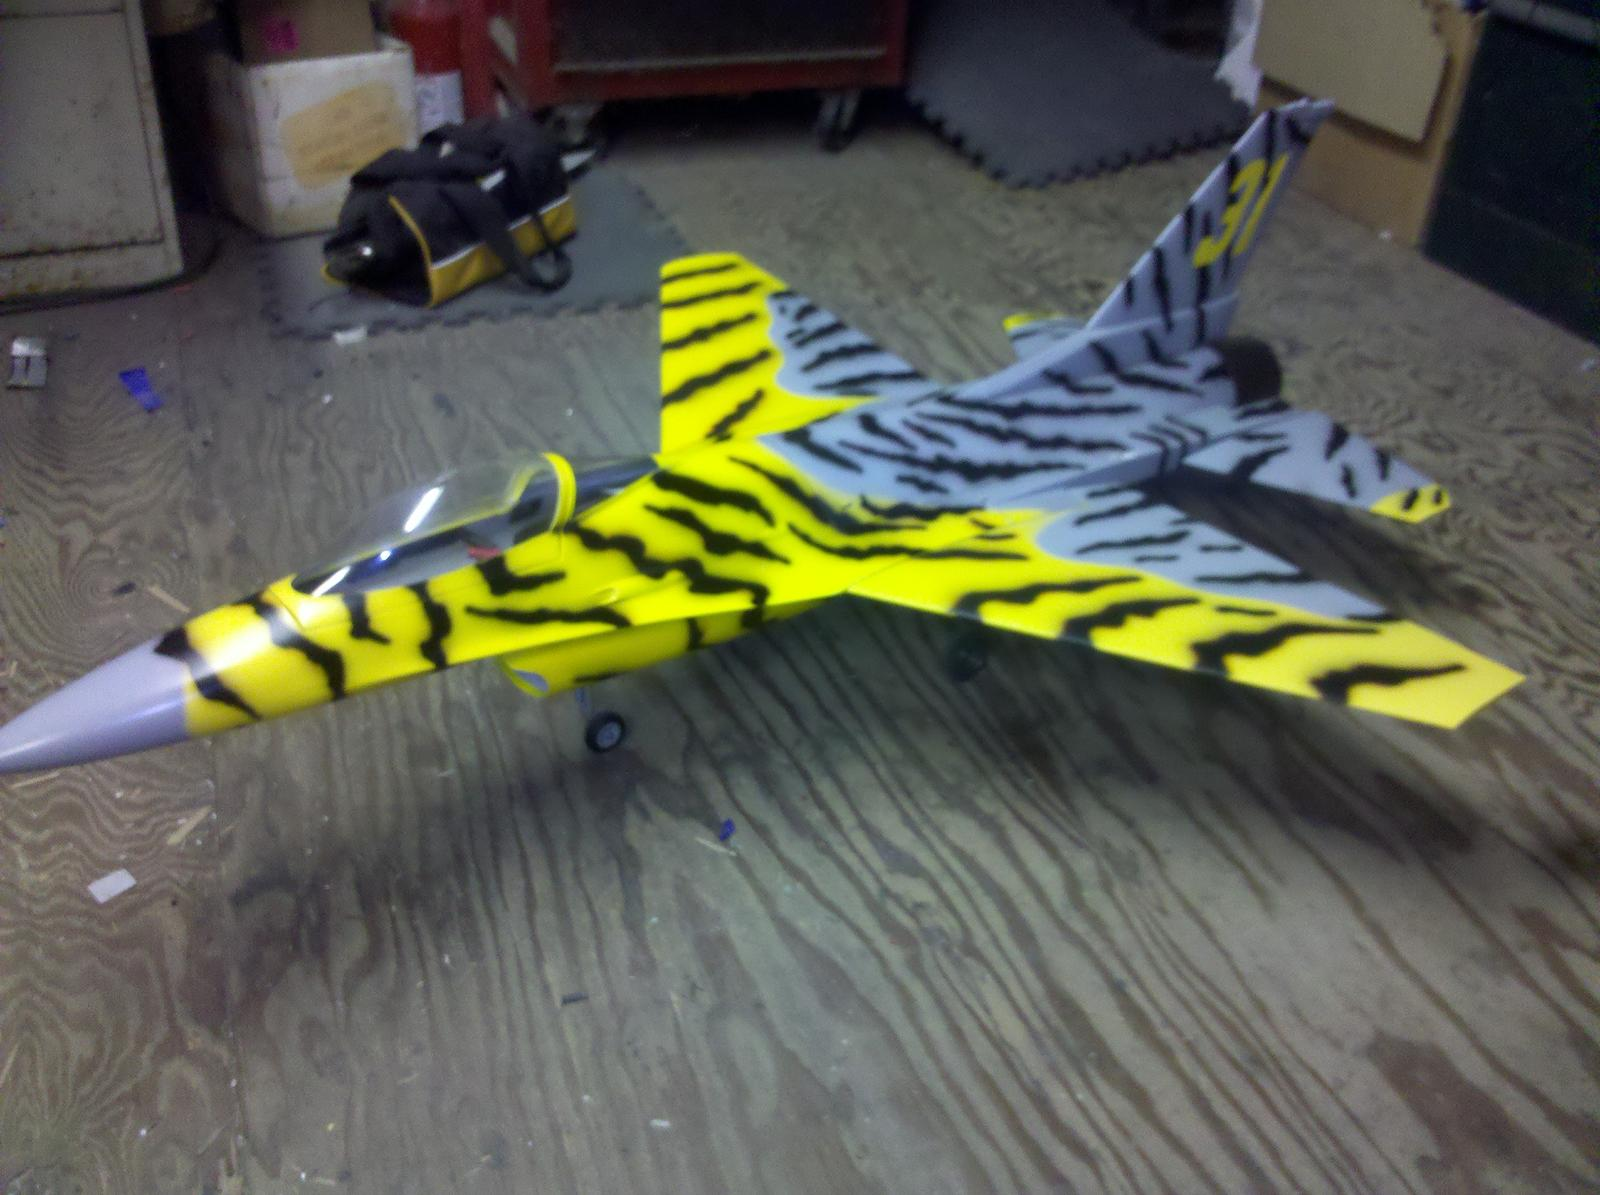 new wings installed and sitting on her legs, Tamjets mini air's with brakes